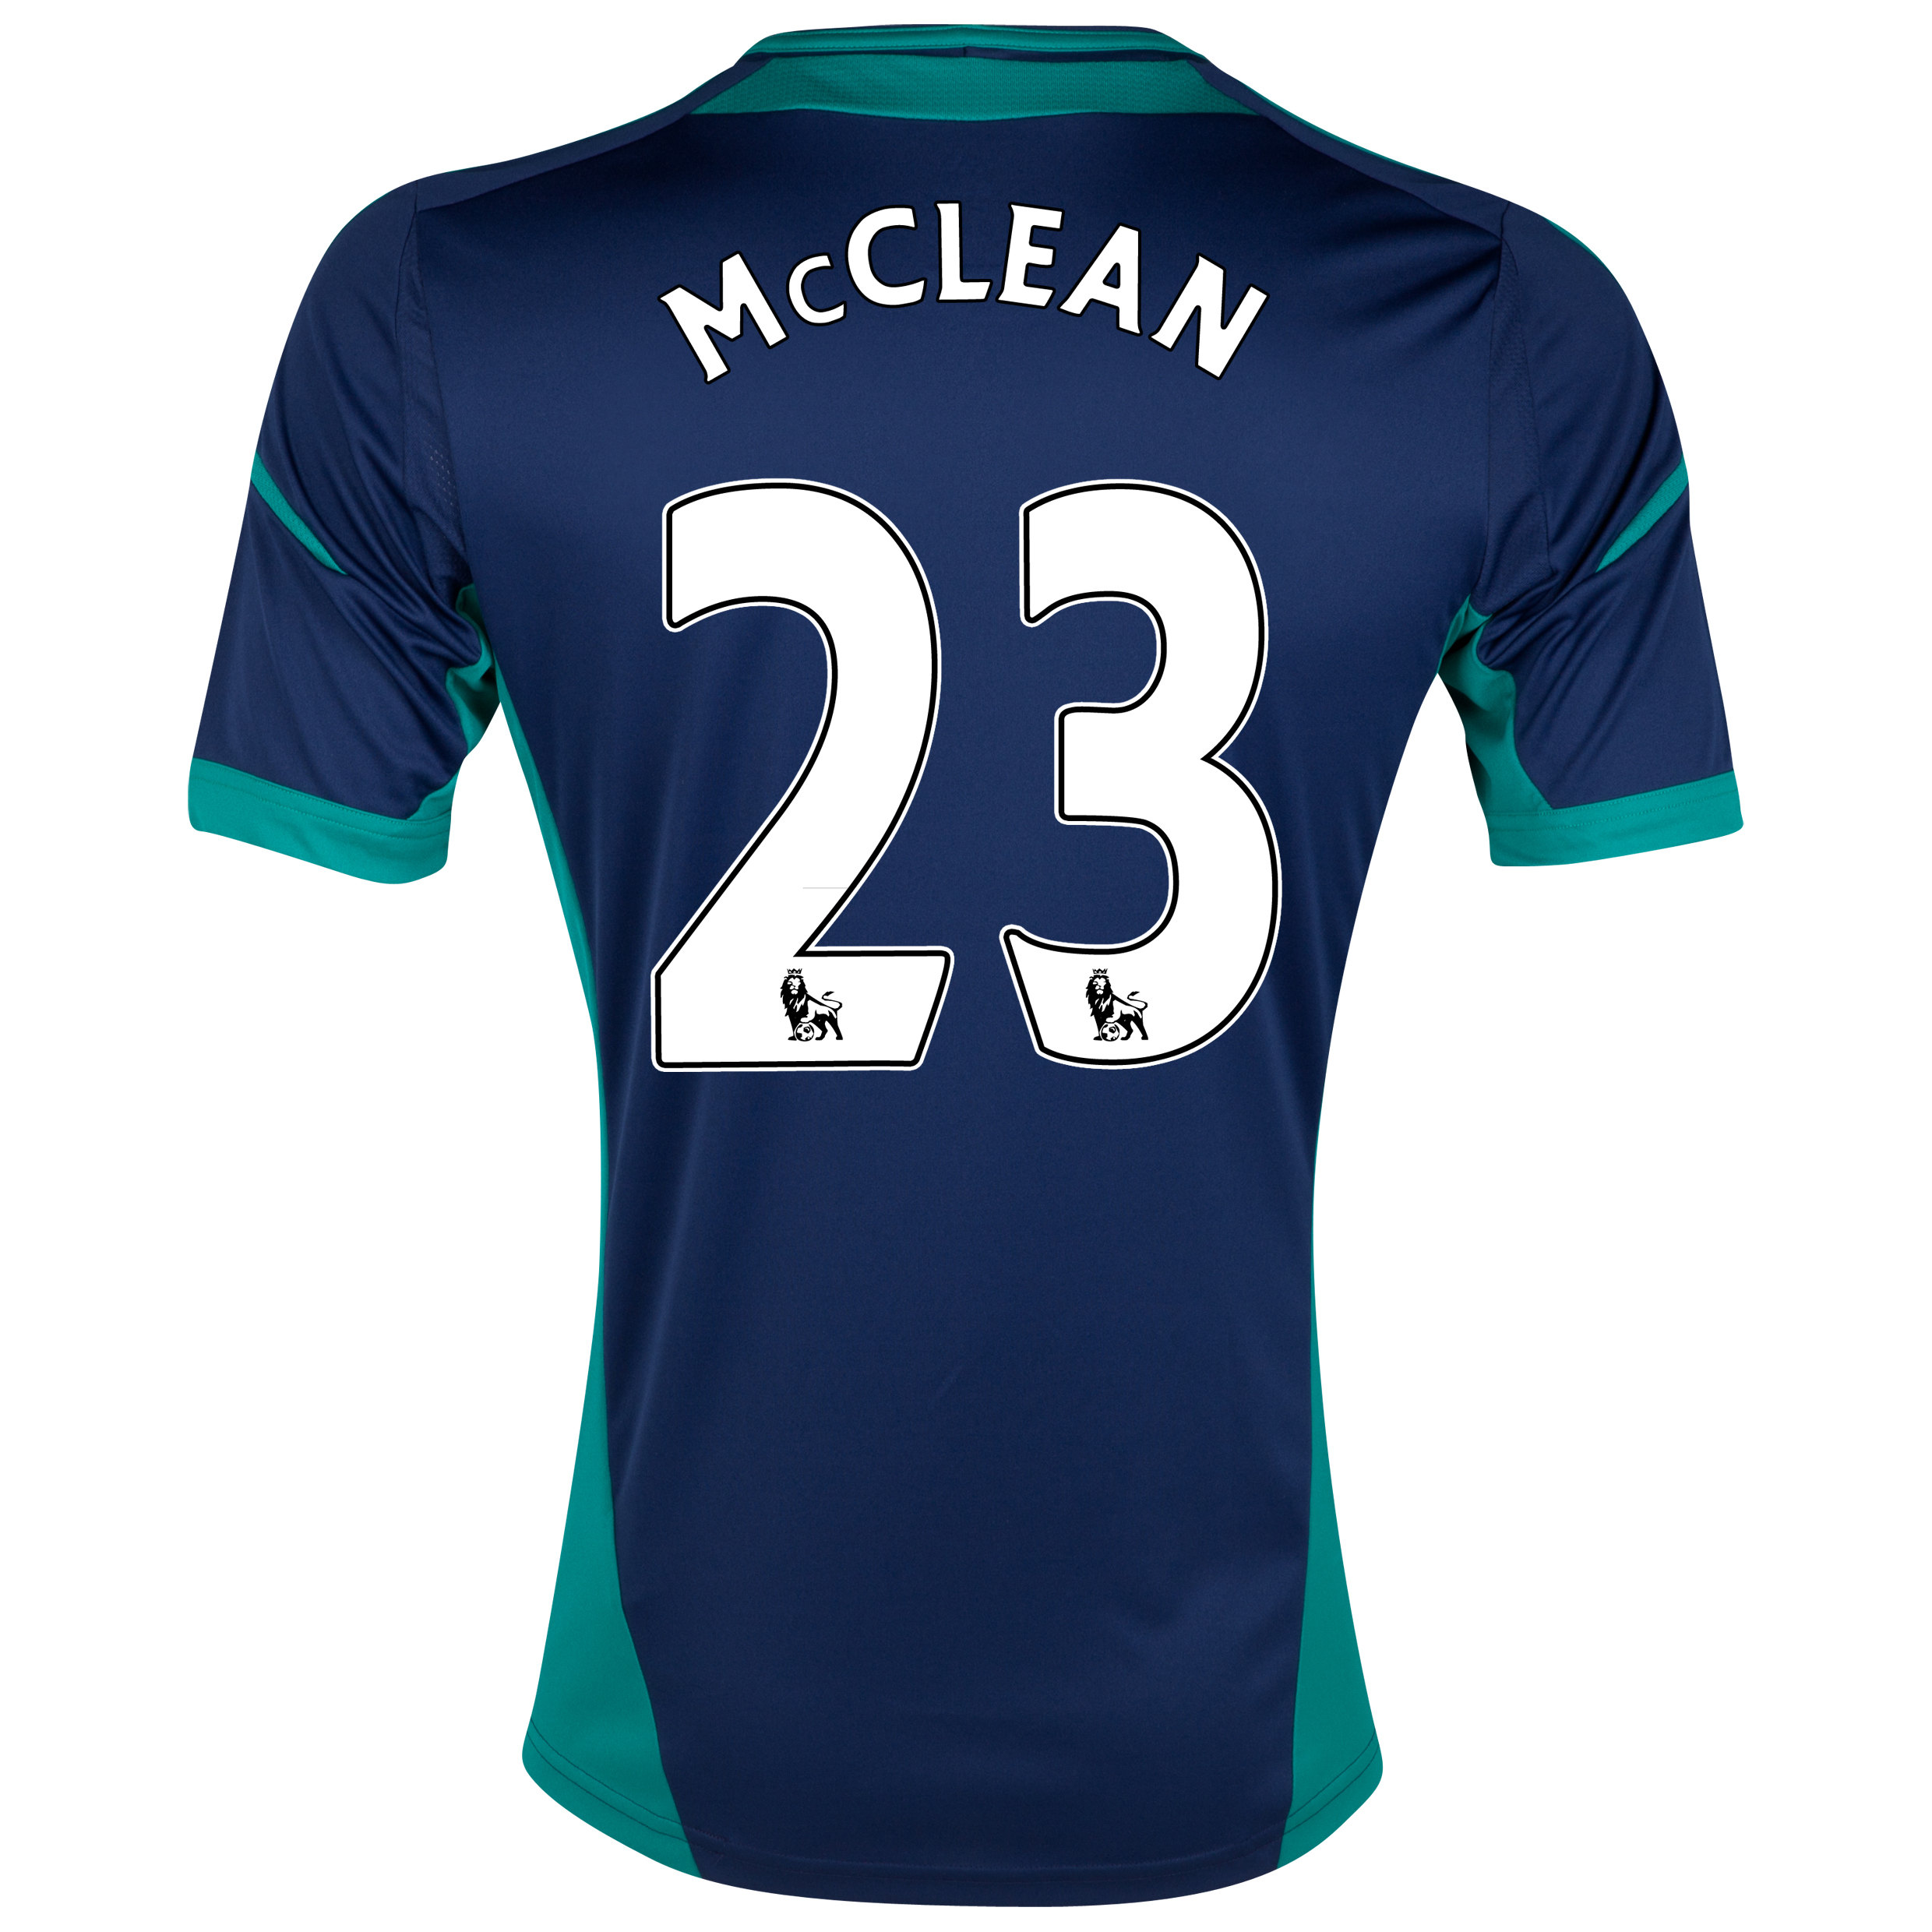 Sunderland Away Shirt 2012/13 with McClean 23 printing